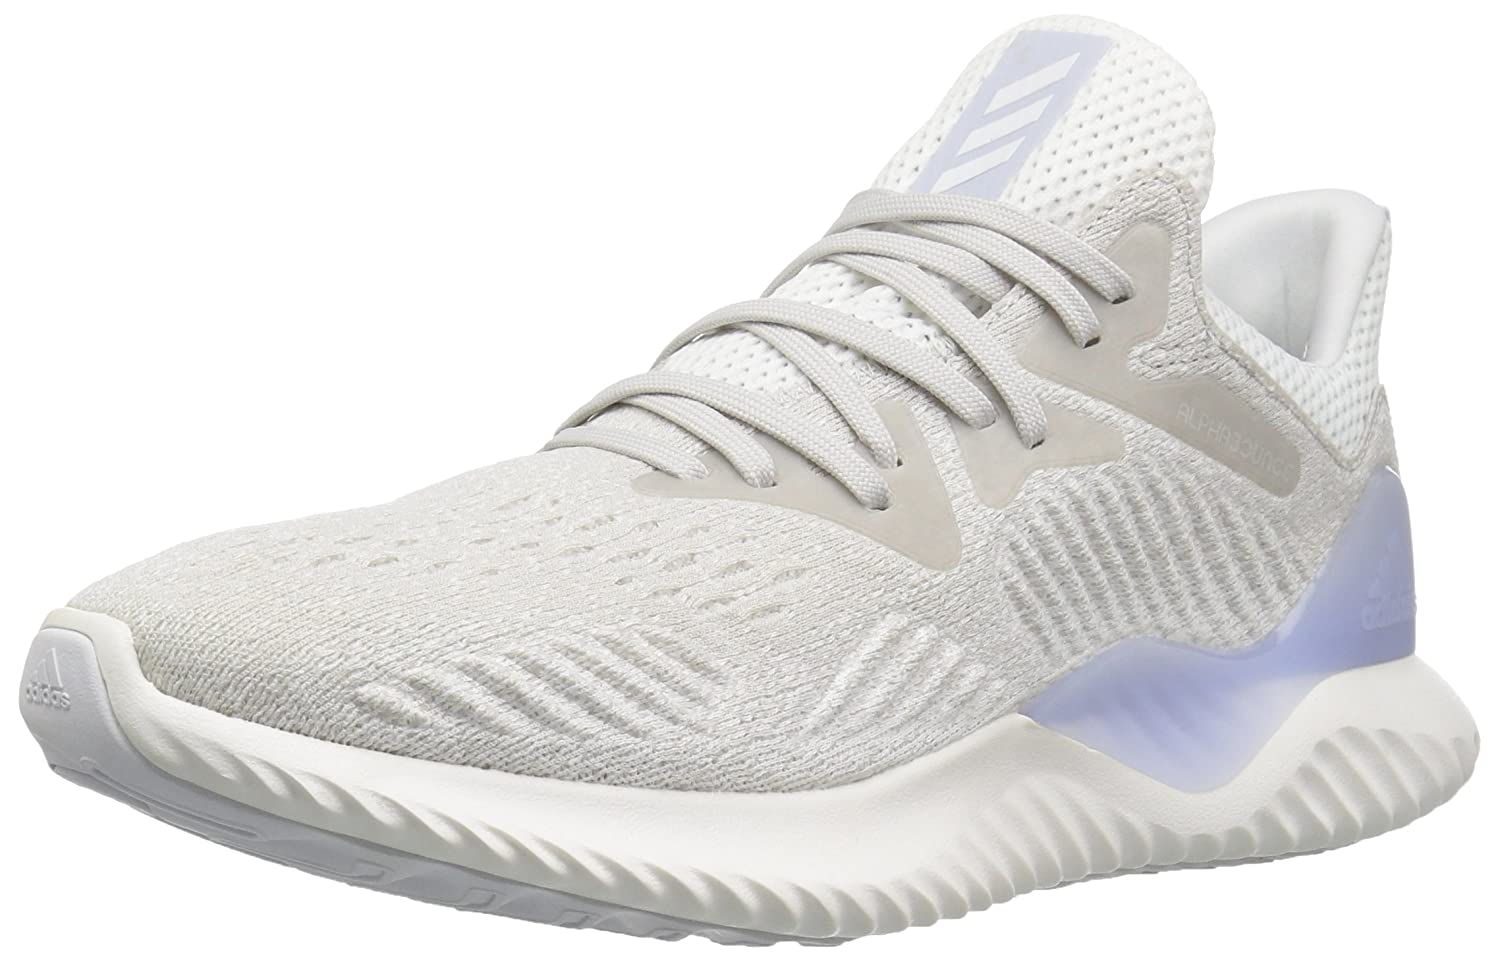 adidas Alphabounce Beyond 2 M Beige White Mens Shoes in 2019